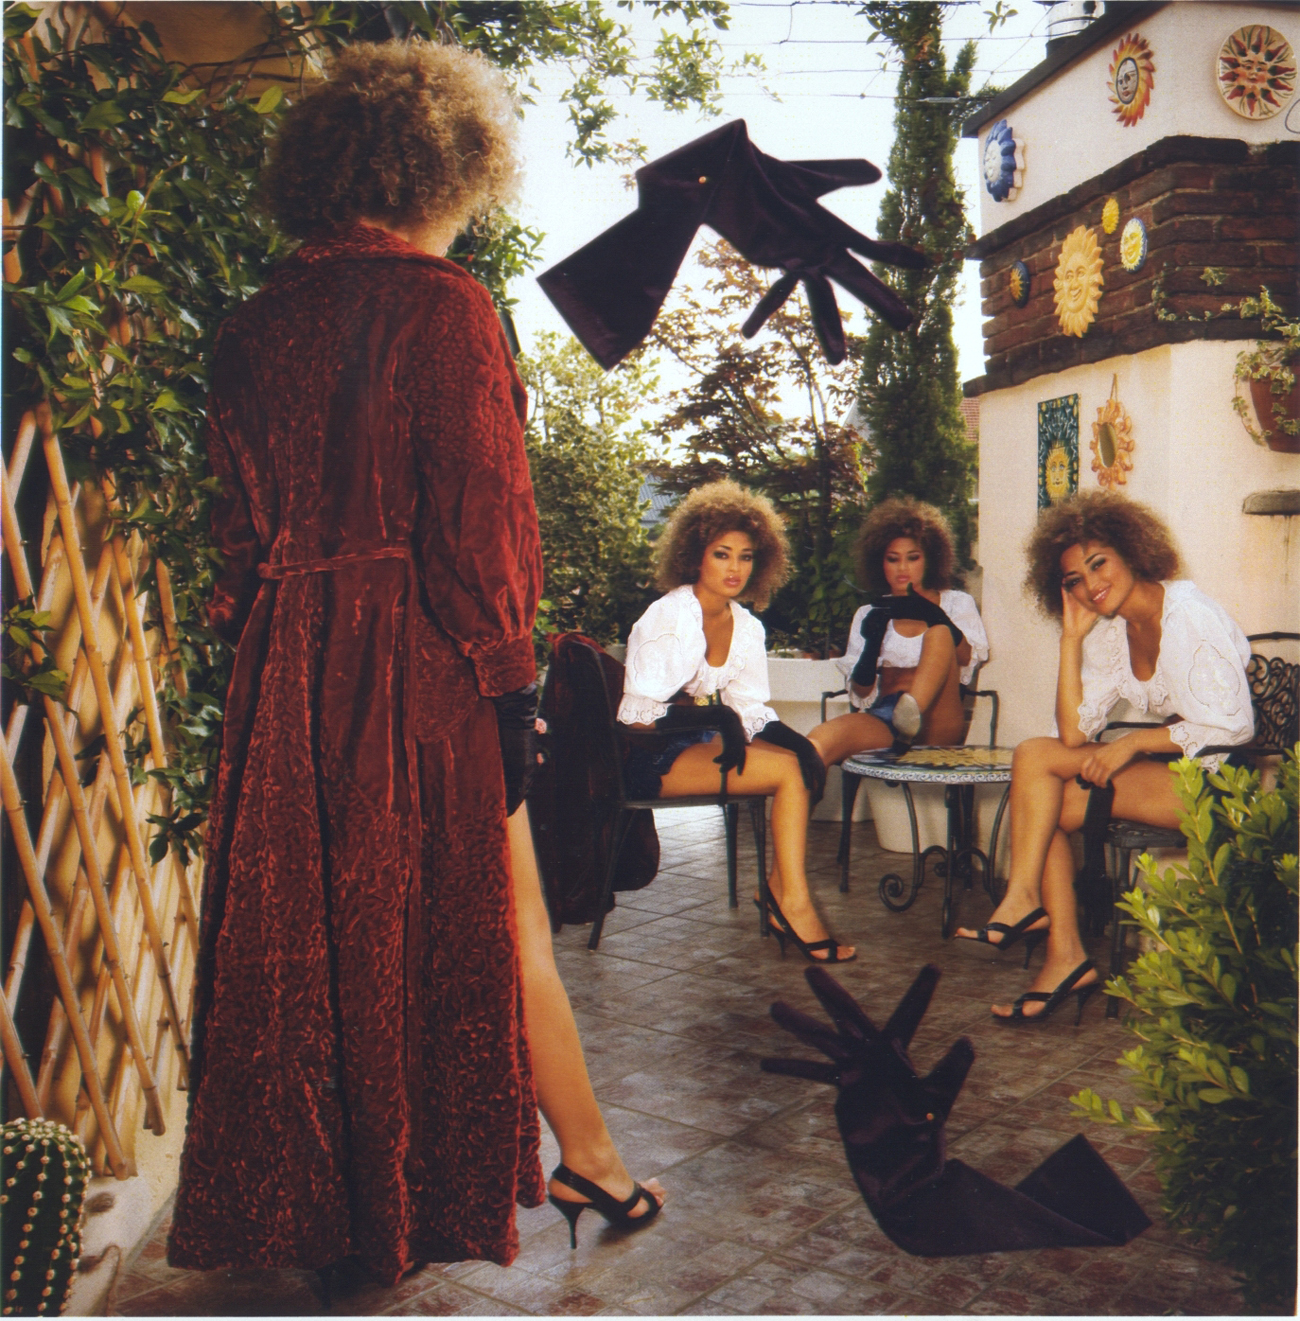 Lloning on the terrace - Collage su stampa lambda - 100x200 cm - 2011